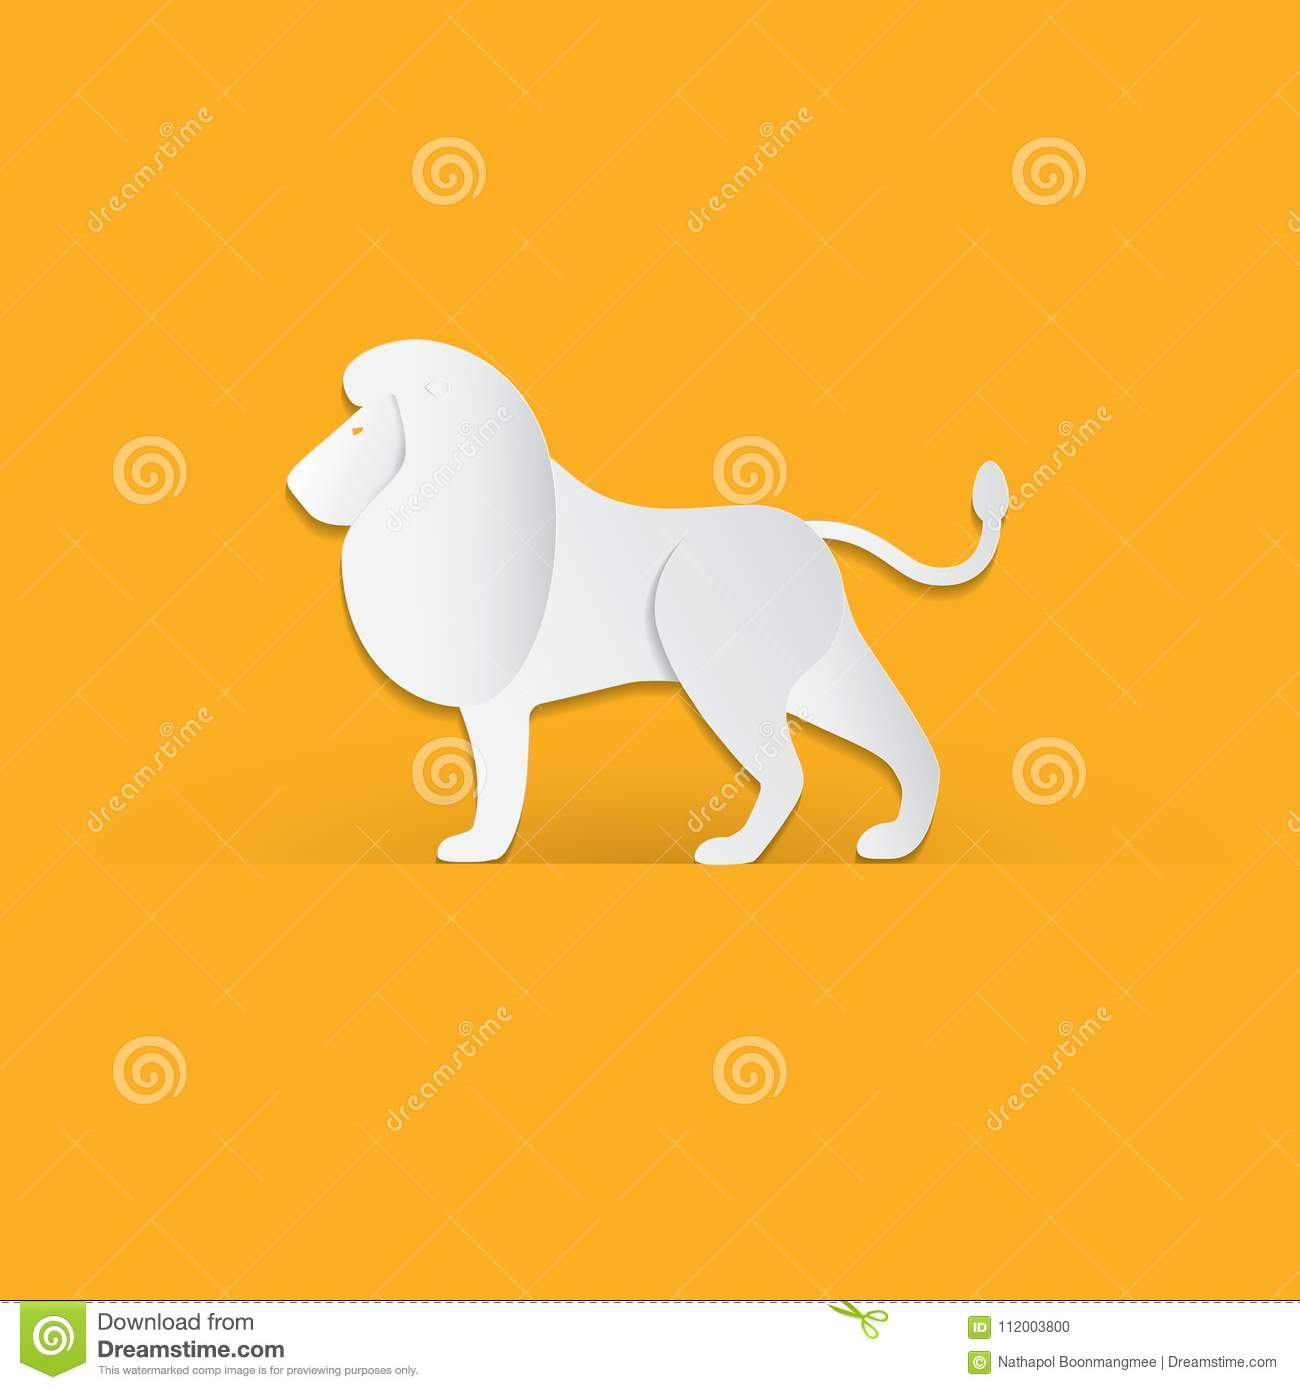 Lion in trendy paper cut craft graphic style. Modern design for advertising, branding greeting card, cover, poster, banner. Vecto